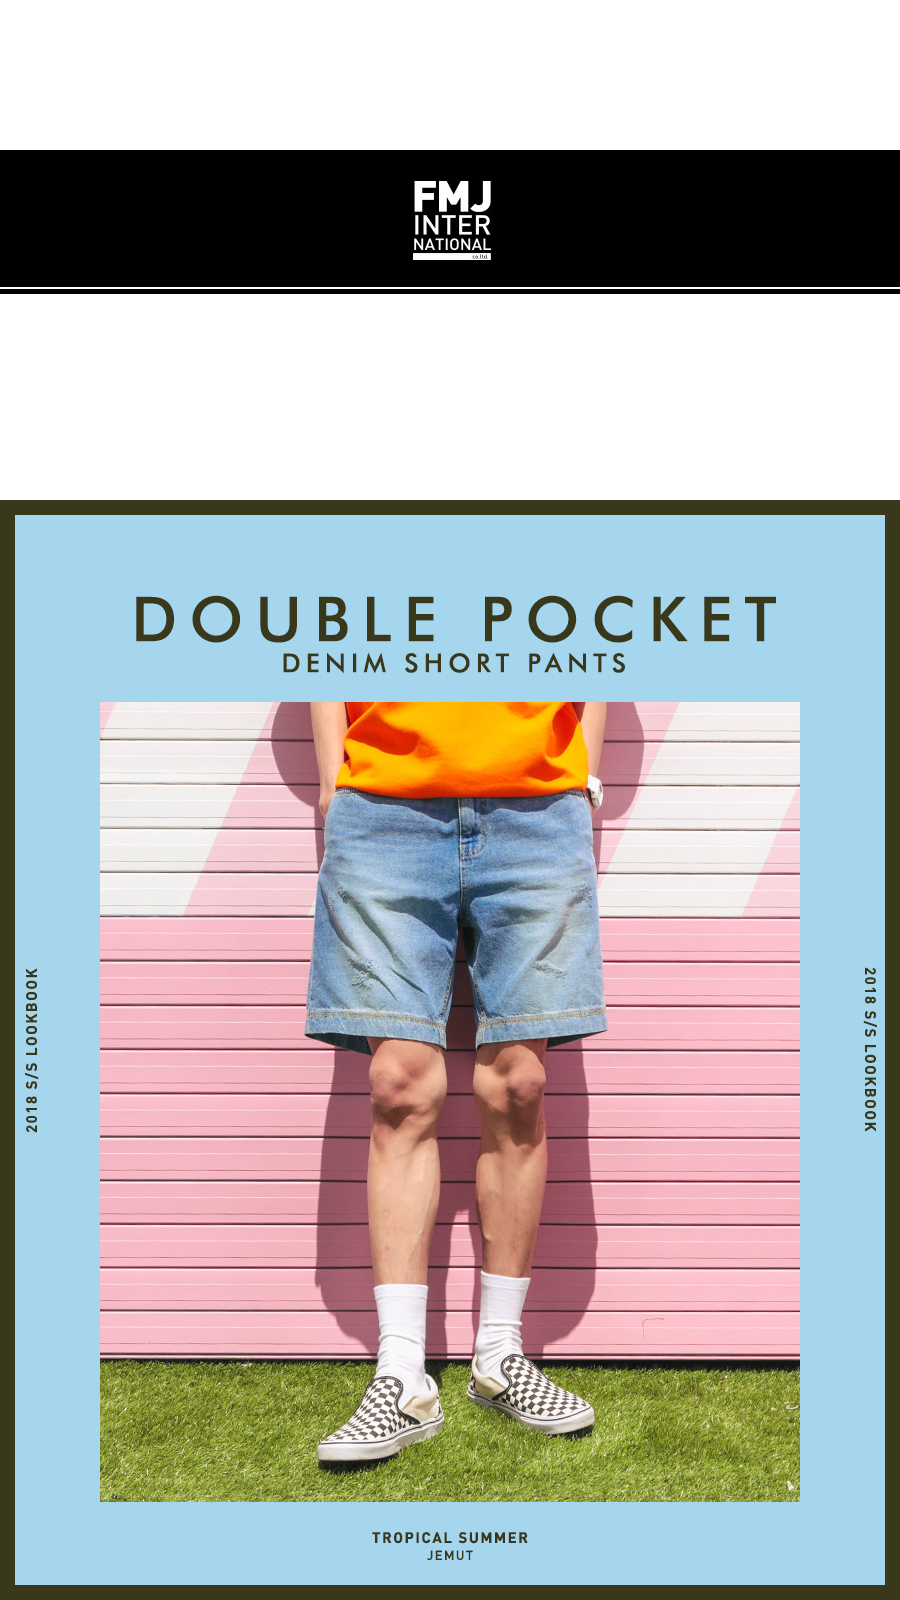 20180516_double_pocket_denim_shot_pants_model_kj_01.jpg